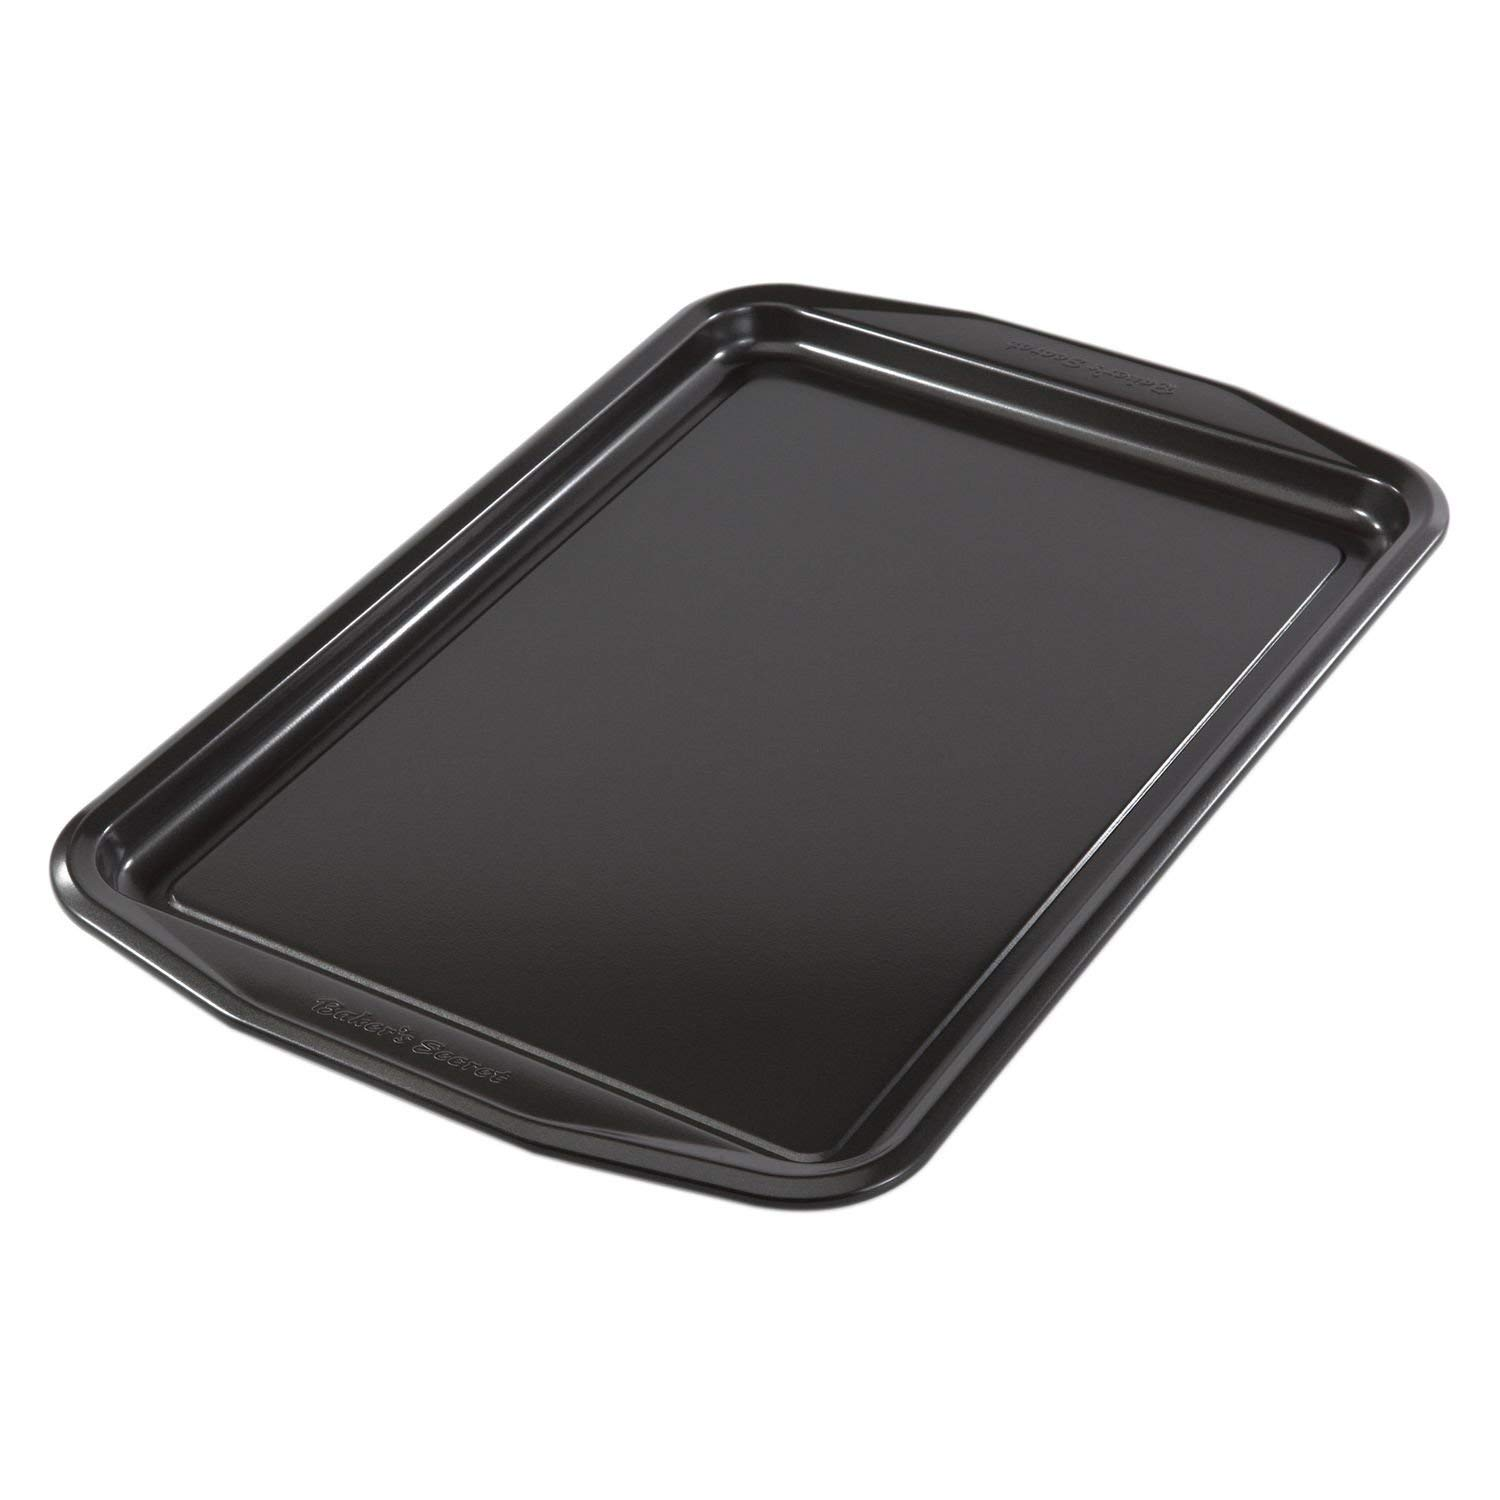 Medium Cookie Sheet - Perfect for my 18